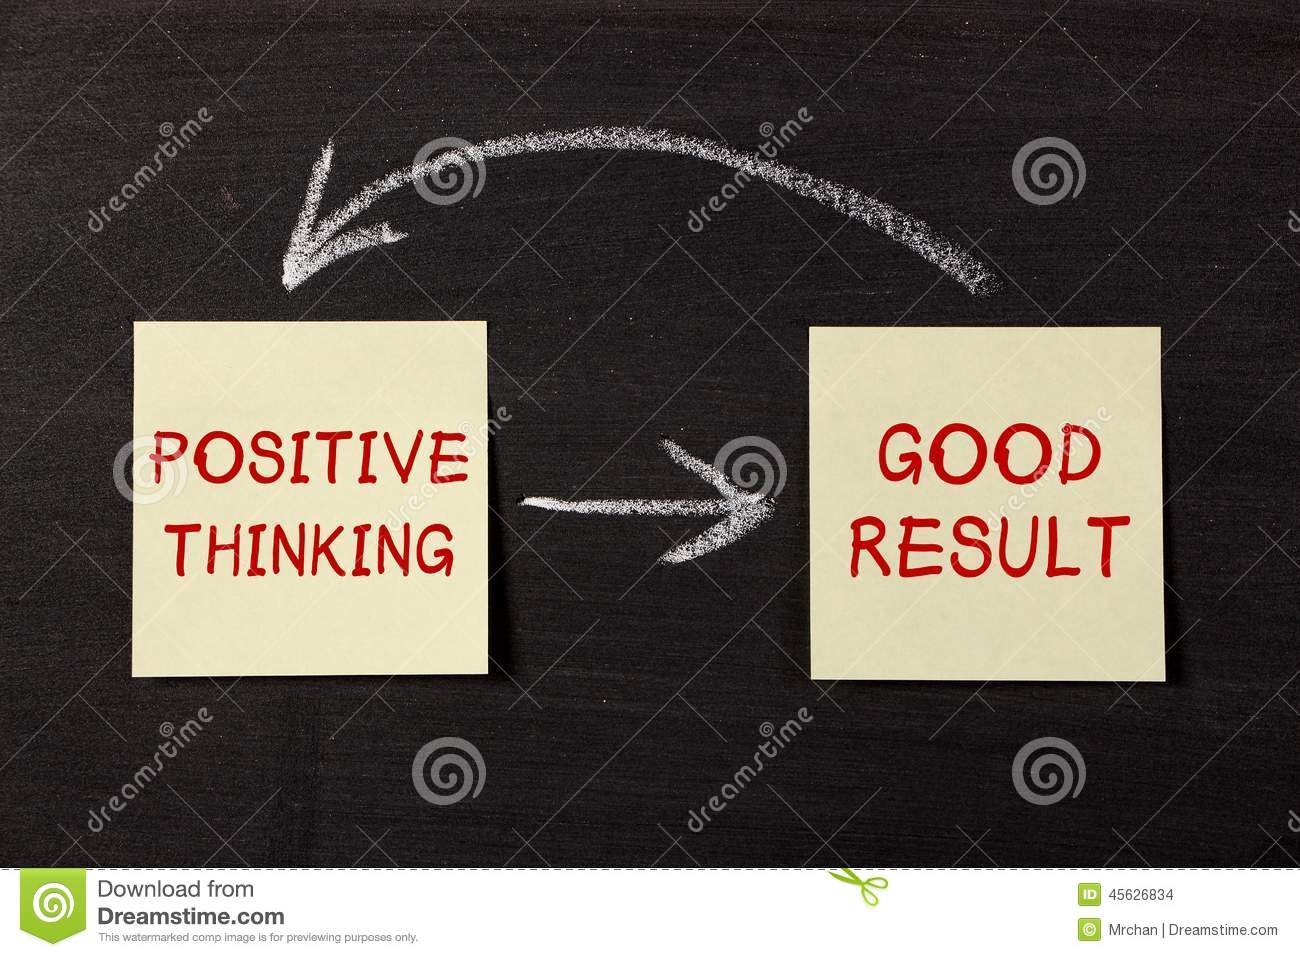 positive-thinking-good-result-sticky-notes-pasted-blackboard-background-chalk-arrows-45626834